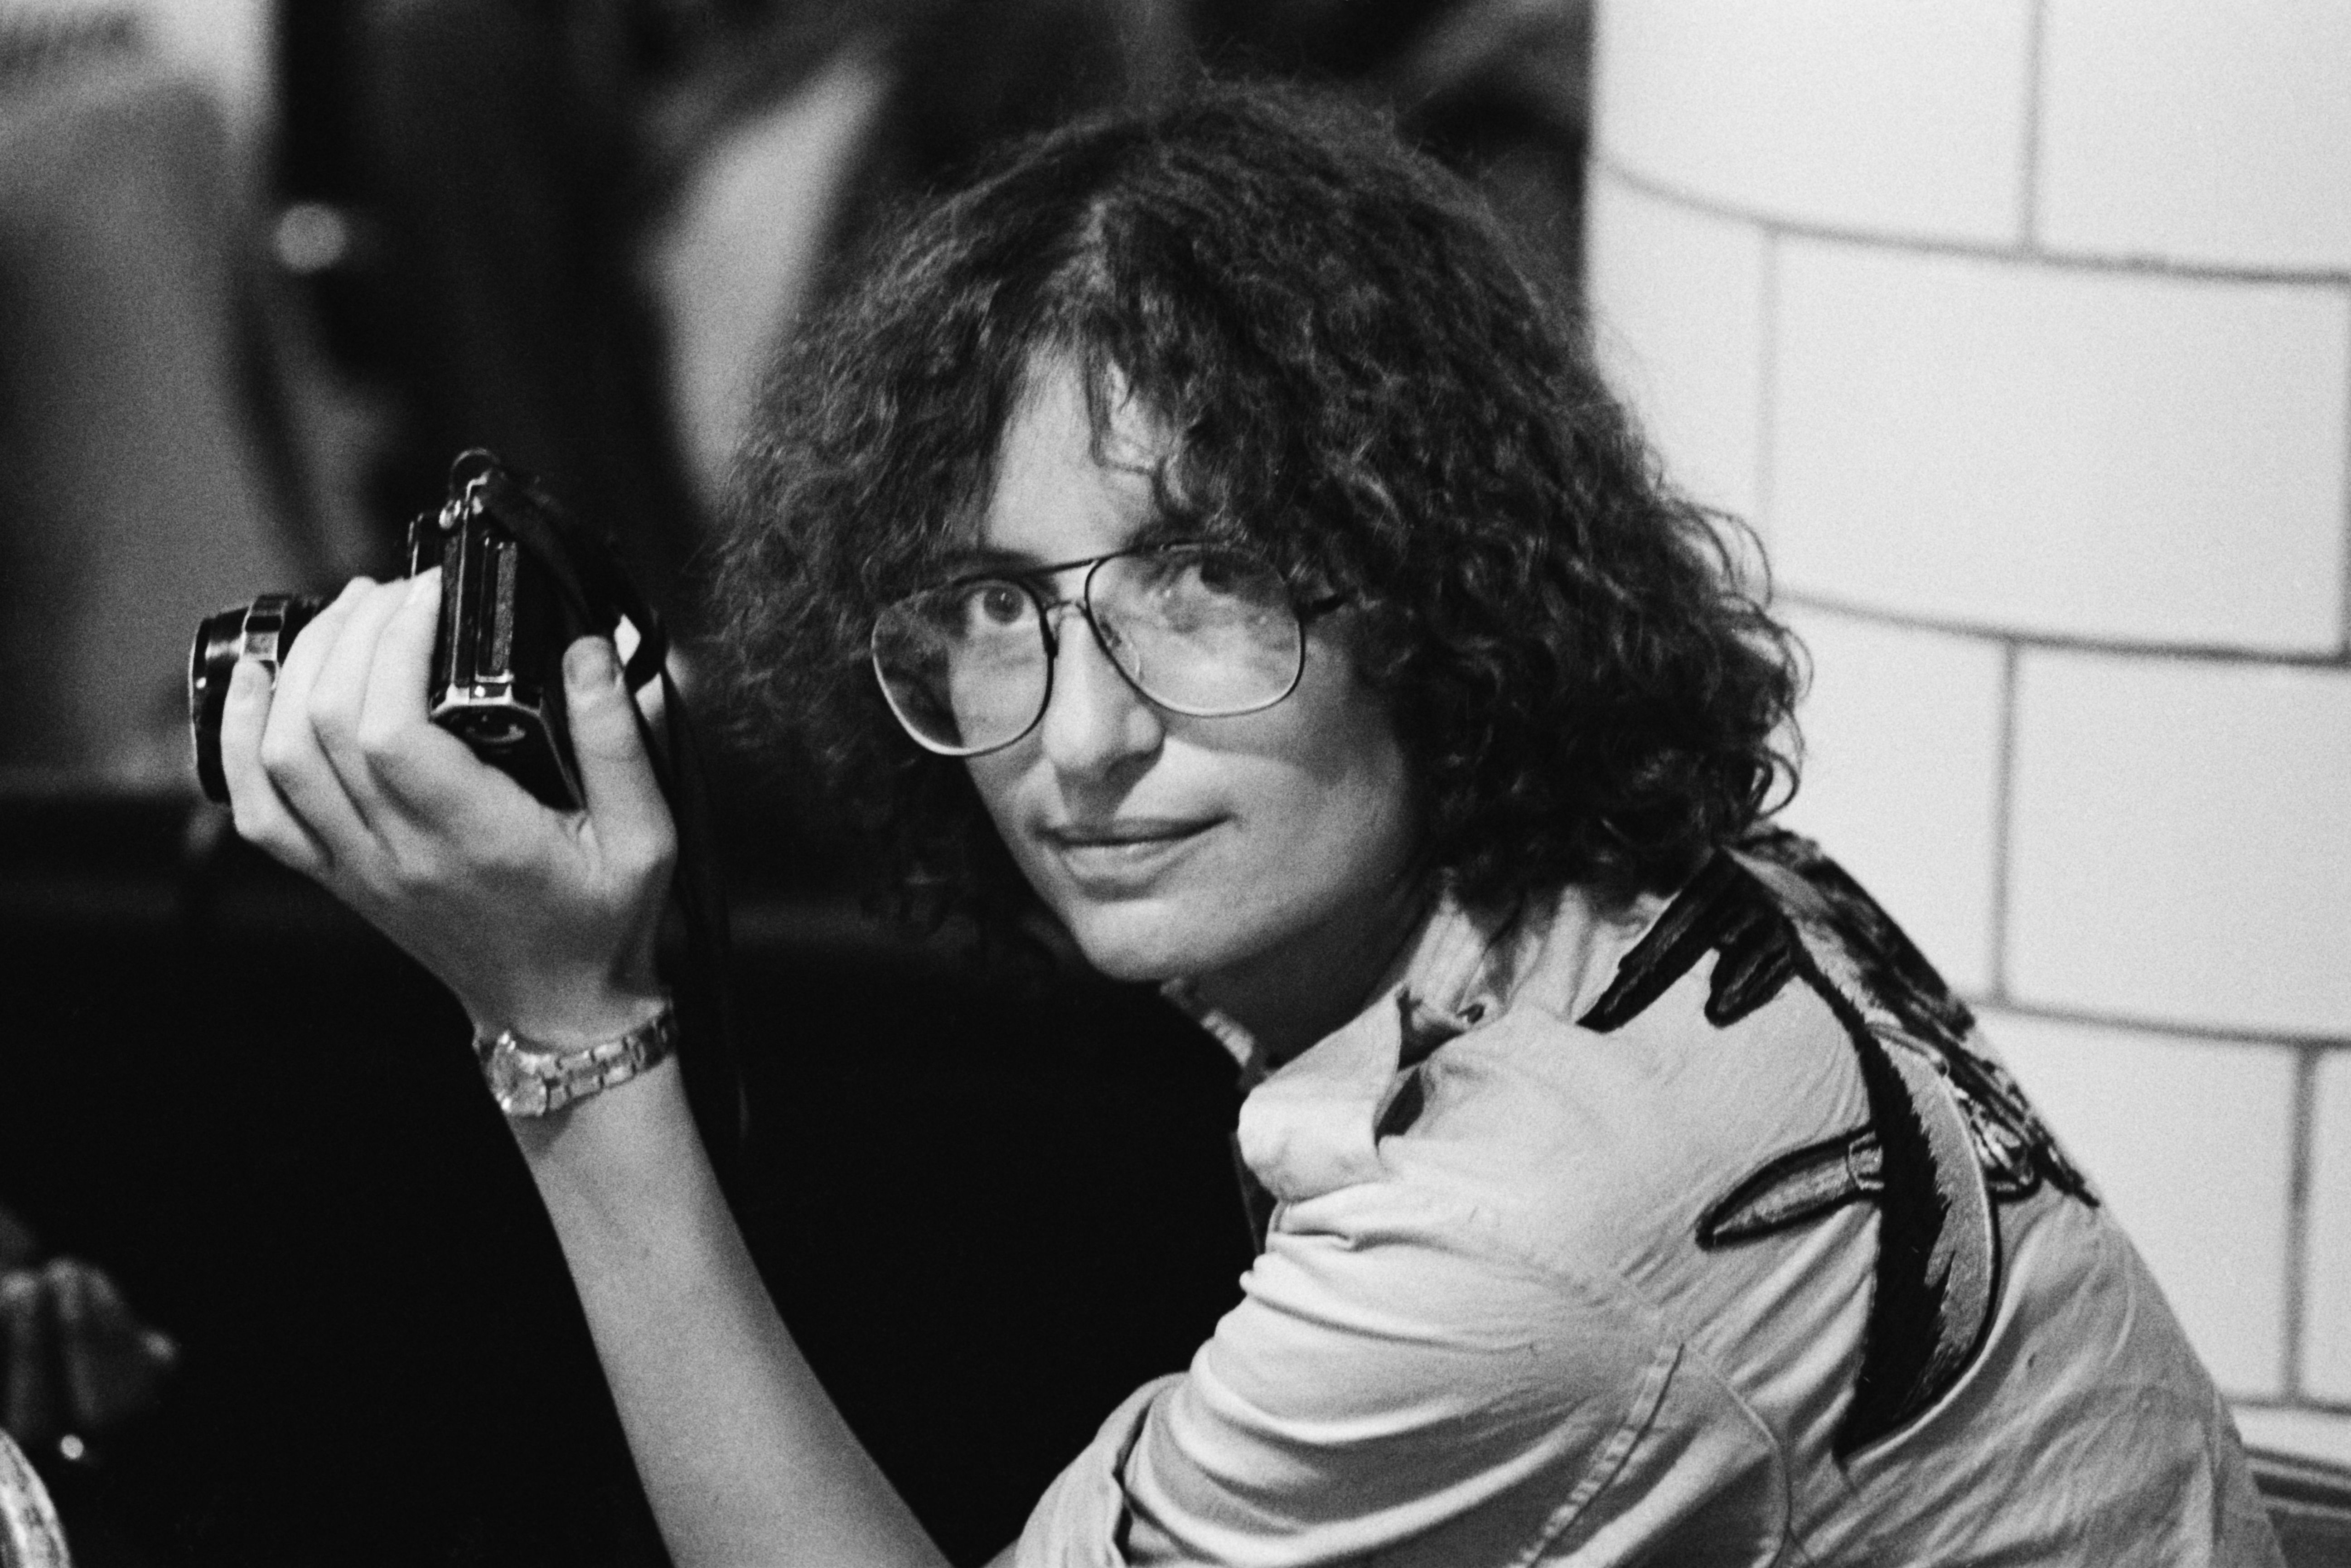 Annie Leibovitz with camera during the Rolling Stones Tour of the Americas, 1975